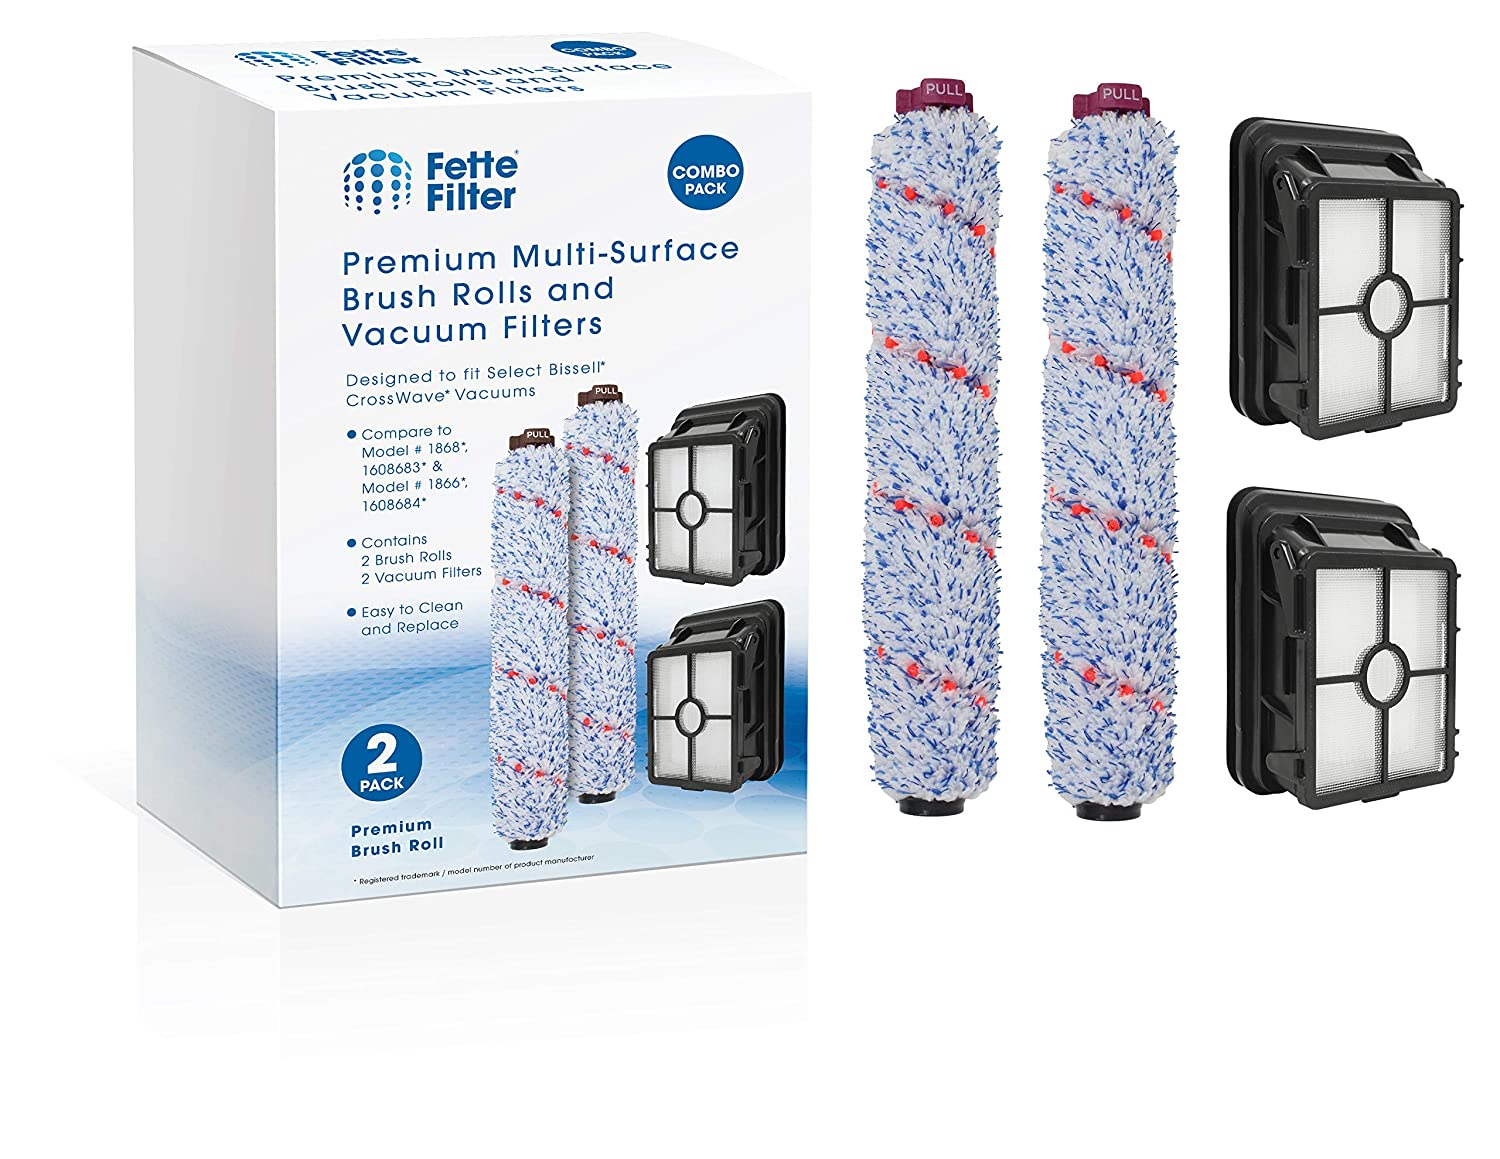 Fette Filter - Gentle Clean Multi Surface 1868 Brush Roll and 1866 Vacuum Filter Compatible with Bissell CrossWave. Compare to Part # 1608683, 160-8683, 1608684. (Combo Pack)